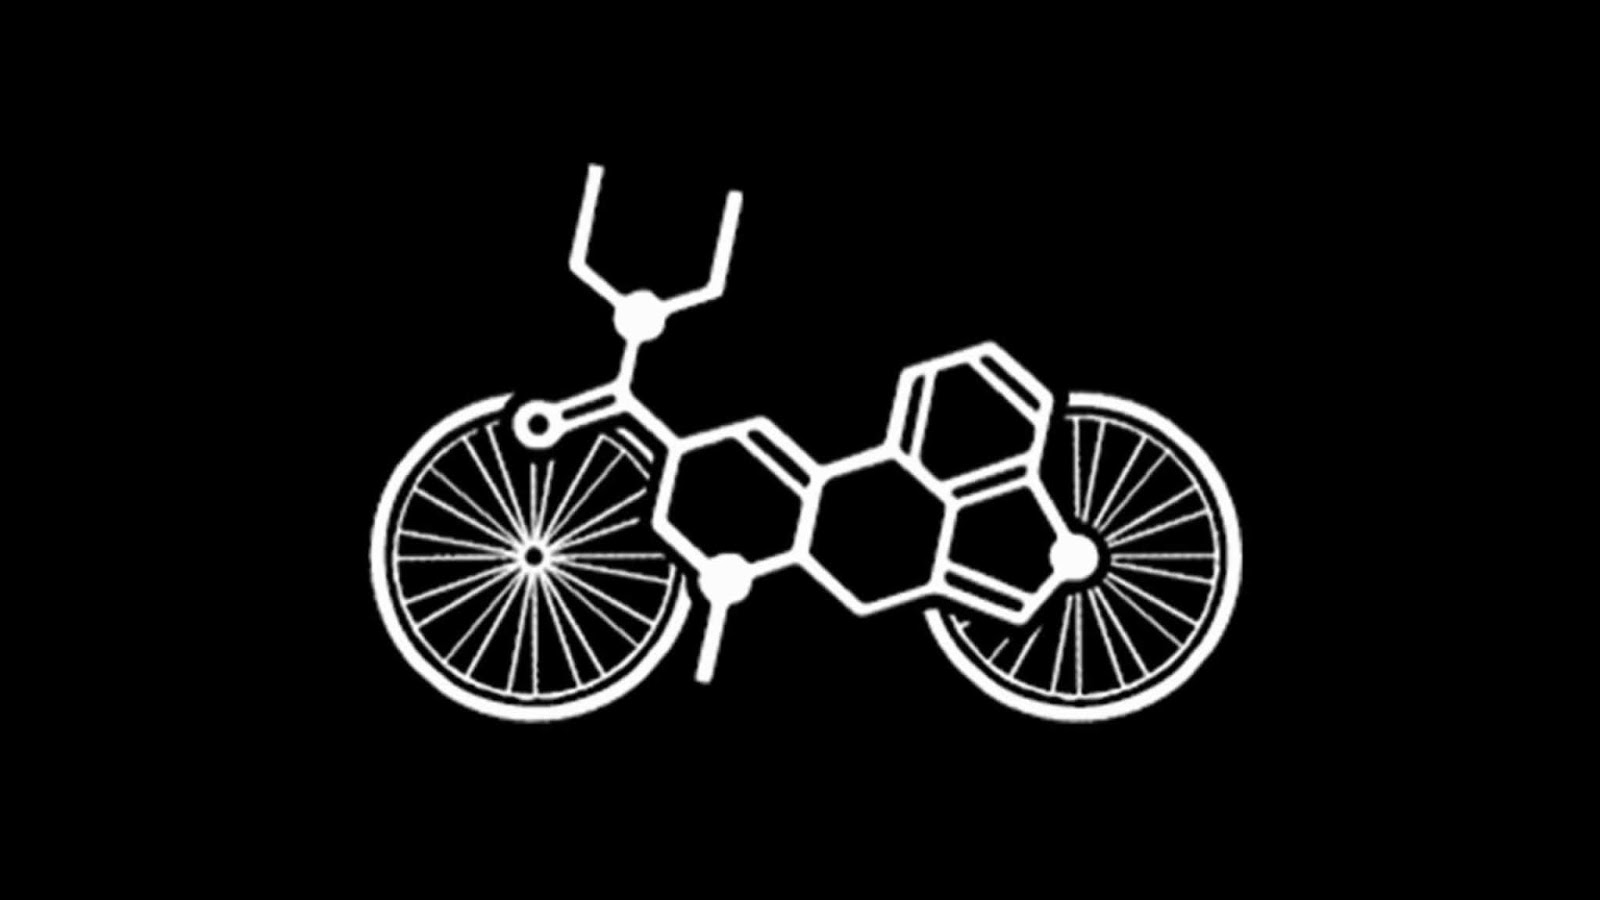 Bicycle Day Quotes, Wishes, Messages, History, Images, Poster, Picture, Wallpaper